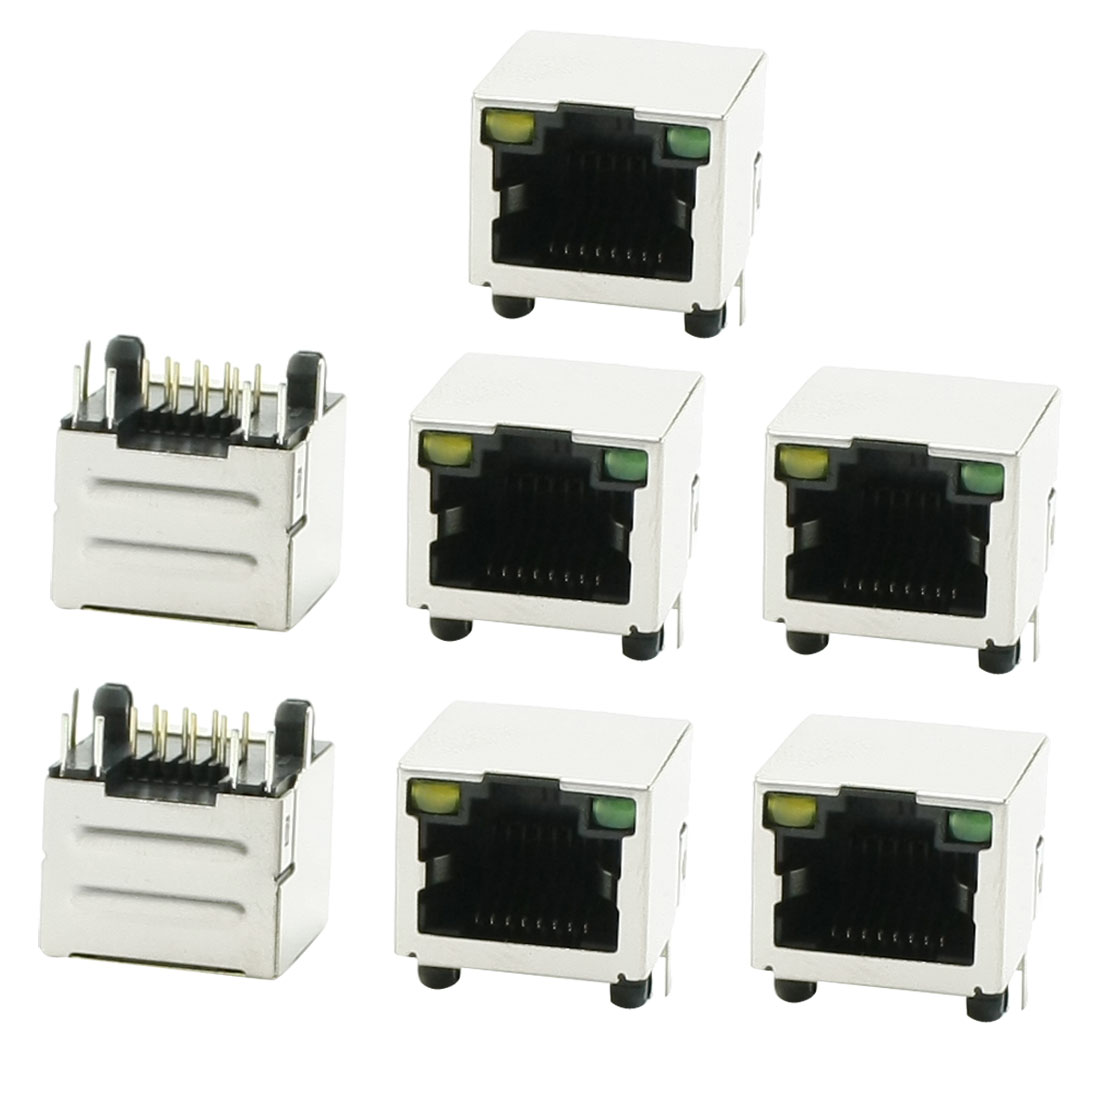 7 x RJ45 8P8C 8-Postion 8-Contact LED Jack Shielded Female Connector Port